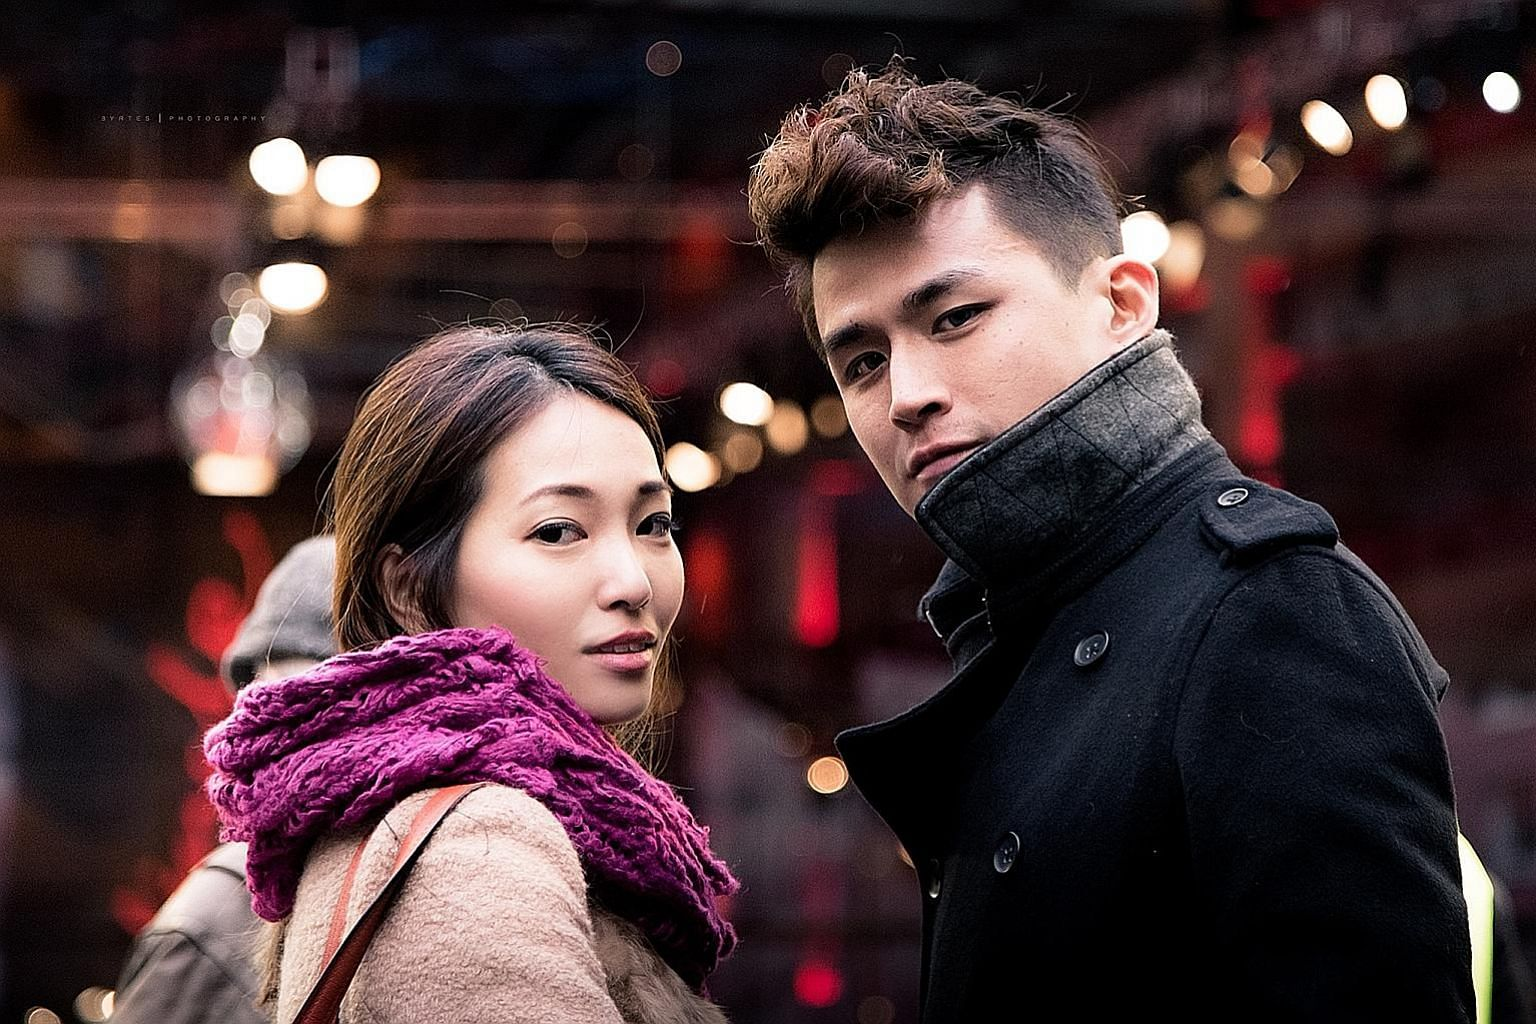 Chiobu Collective director Priscilla Ang Geck Geck and her boyfriend, branding strategist Kenneth Tan, 28, catch indie films and visit museums on weekends.